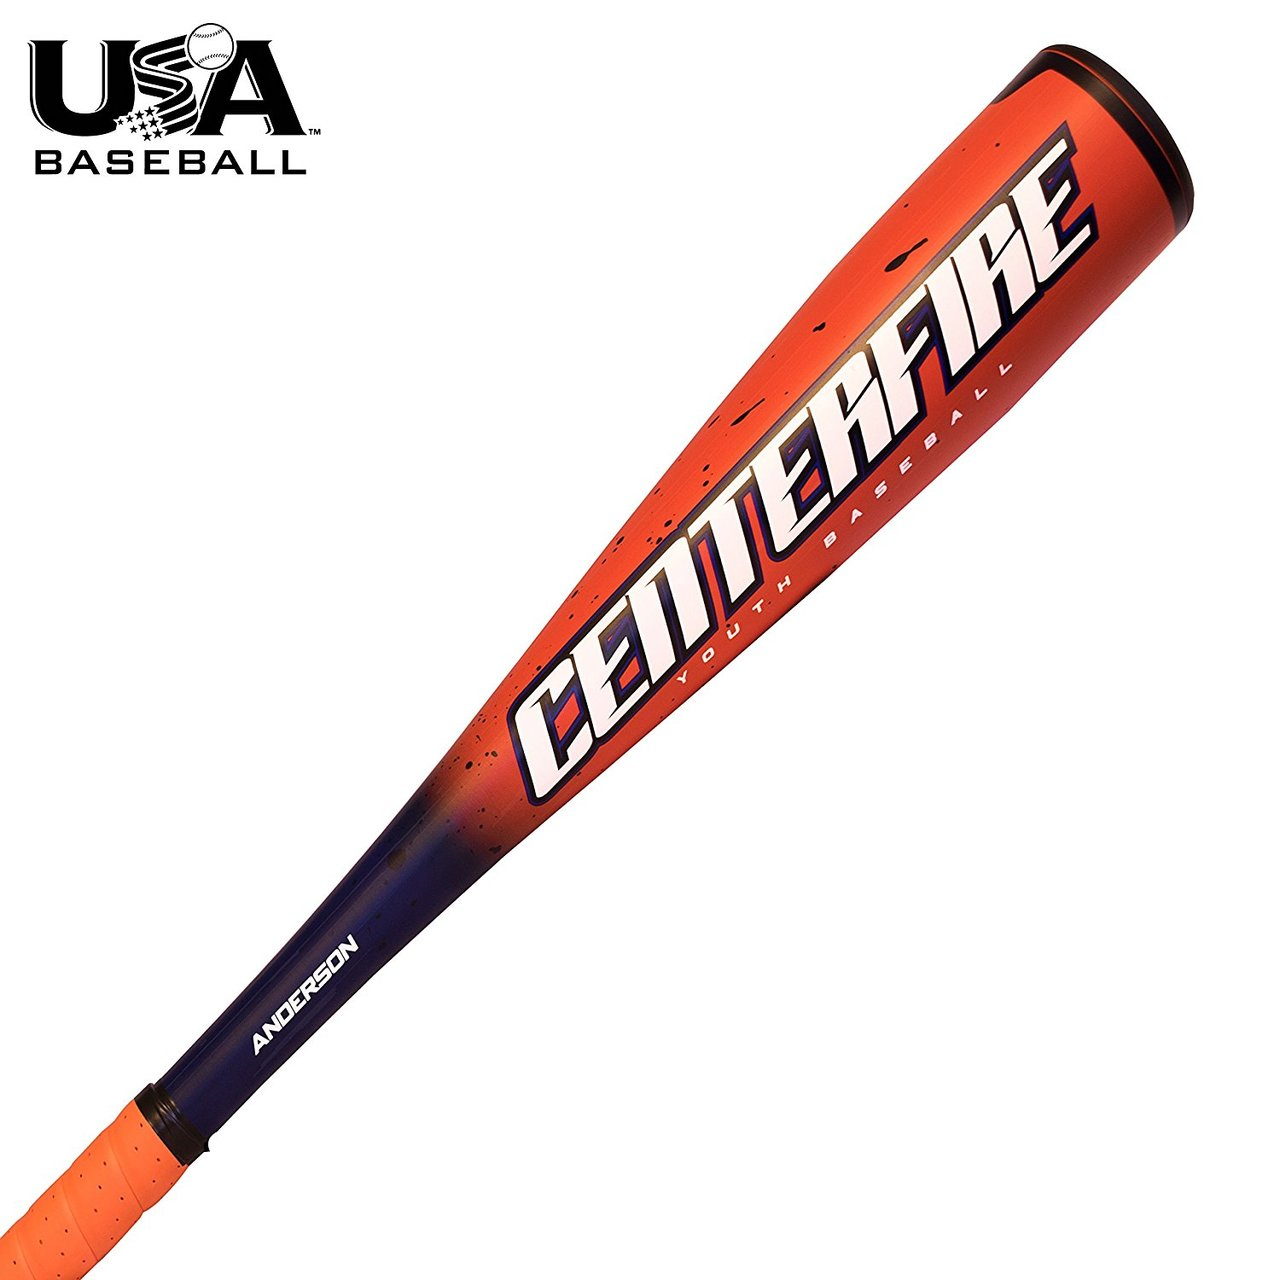 "anderson-2018-centerfire-11-youth-usa-baseball-bat-27-inch-16-oz 015033-2716  874147008522 2 5/8"" Barrel -11 Drop Weight Balanced swing weight for more"